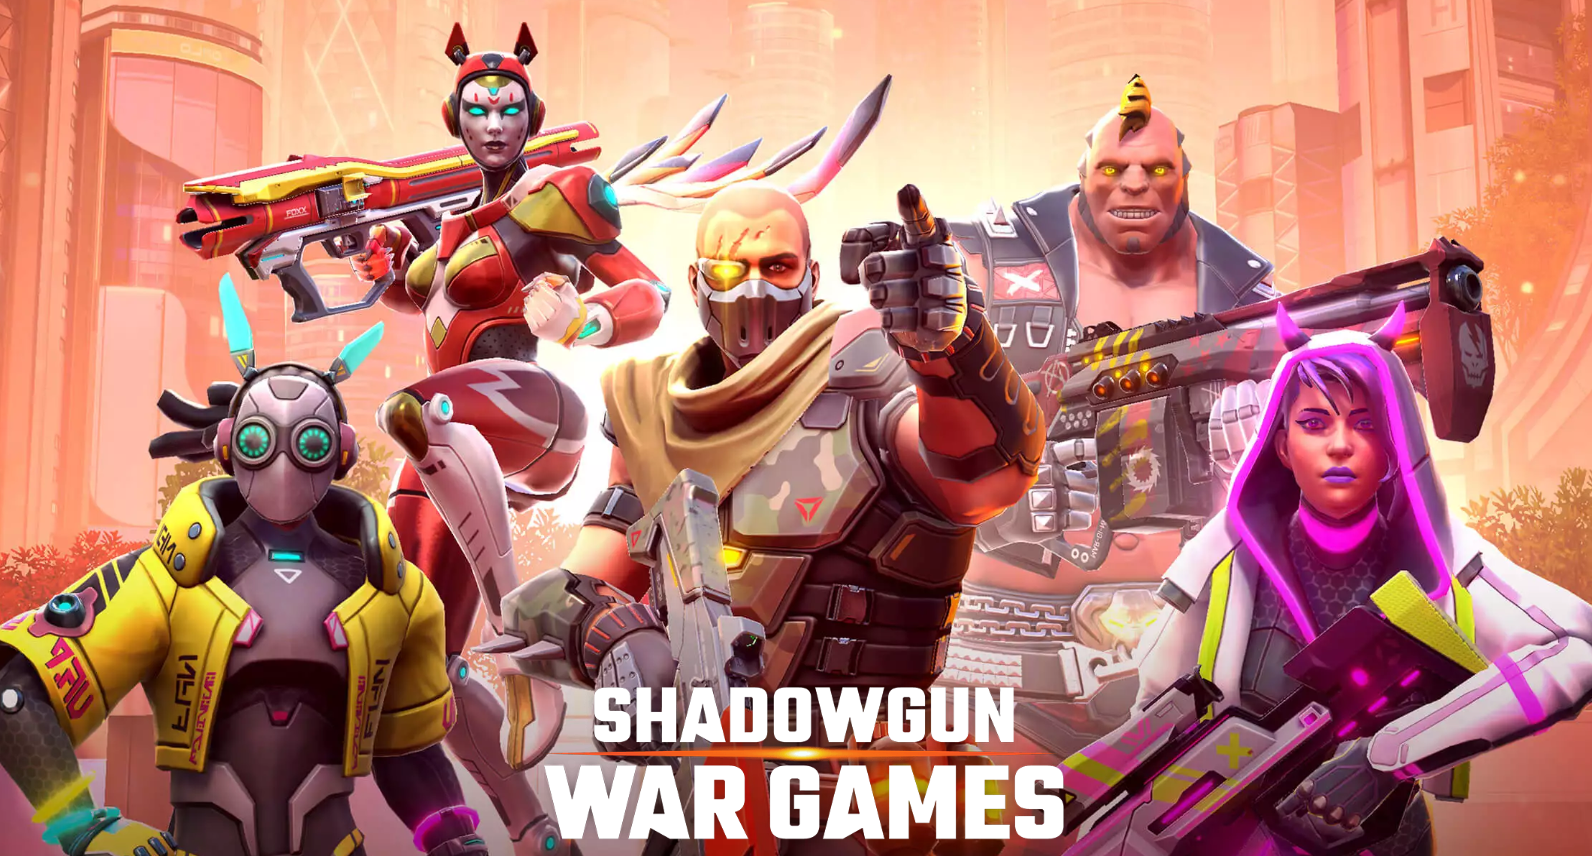 Shadowgun War Games: First Impressions - The Mobile Overwatch? 8